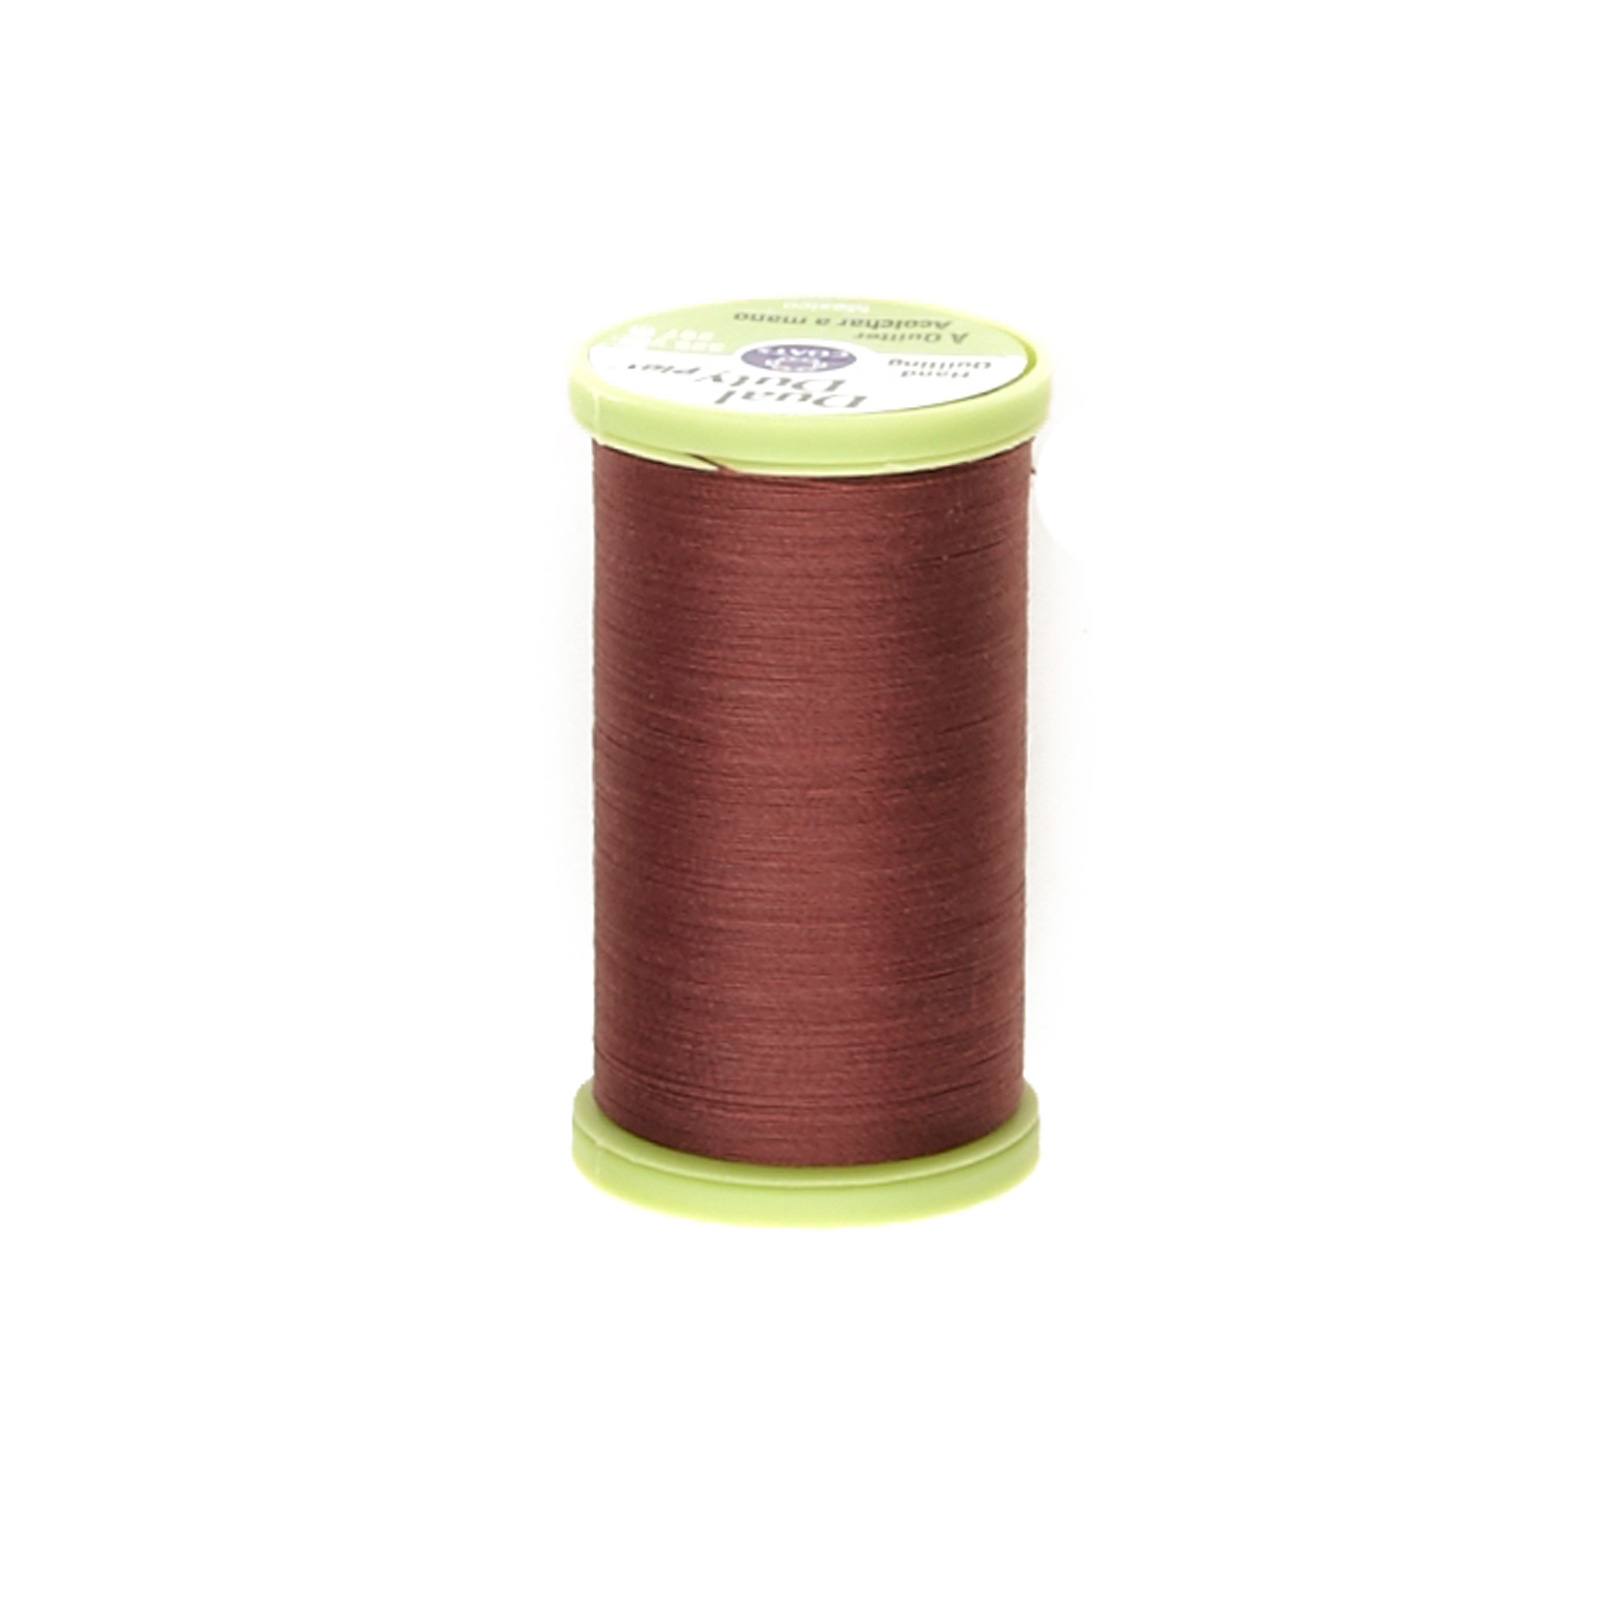 Dual Duty Plus Jeans Amp Topstitching Thread 60 Yds Hot